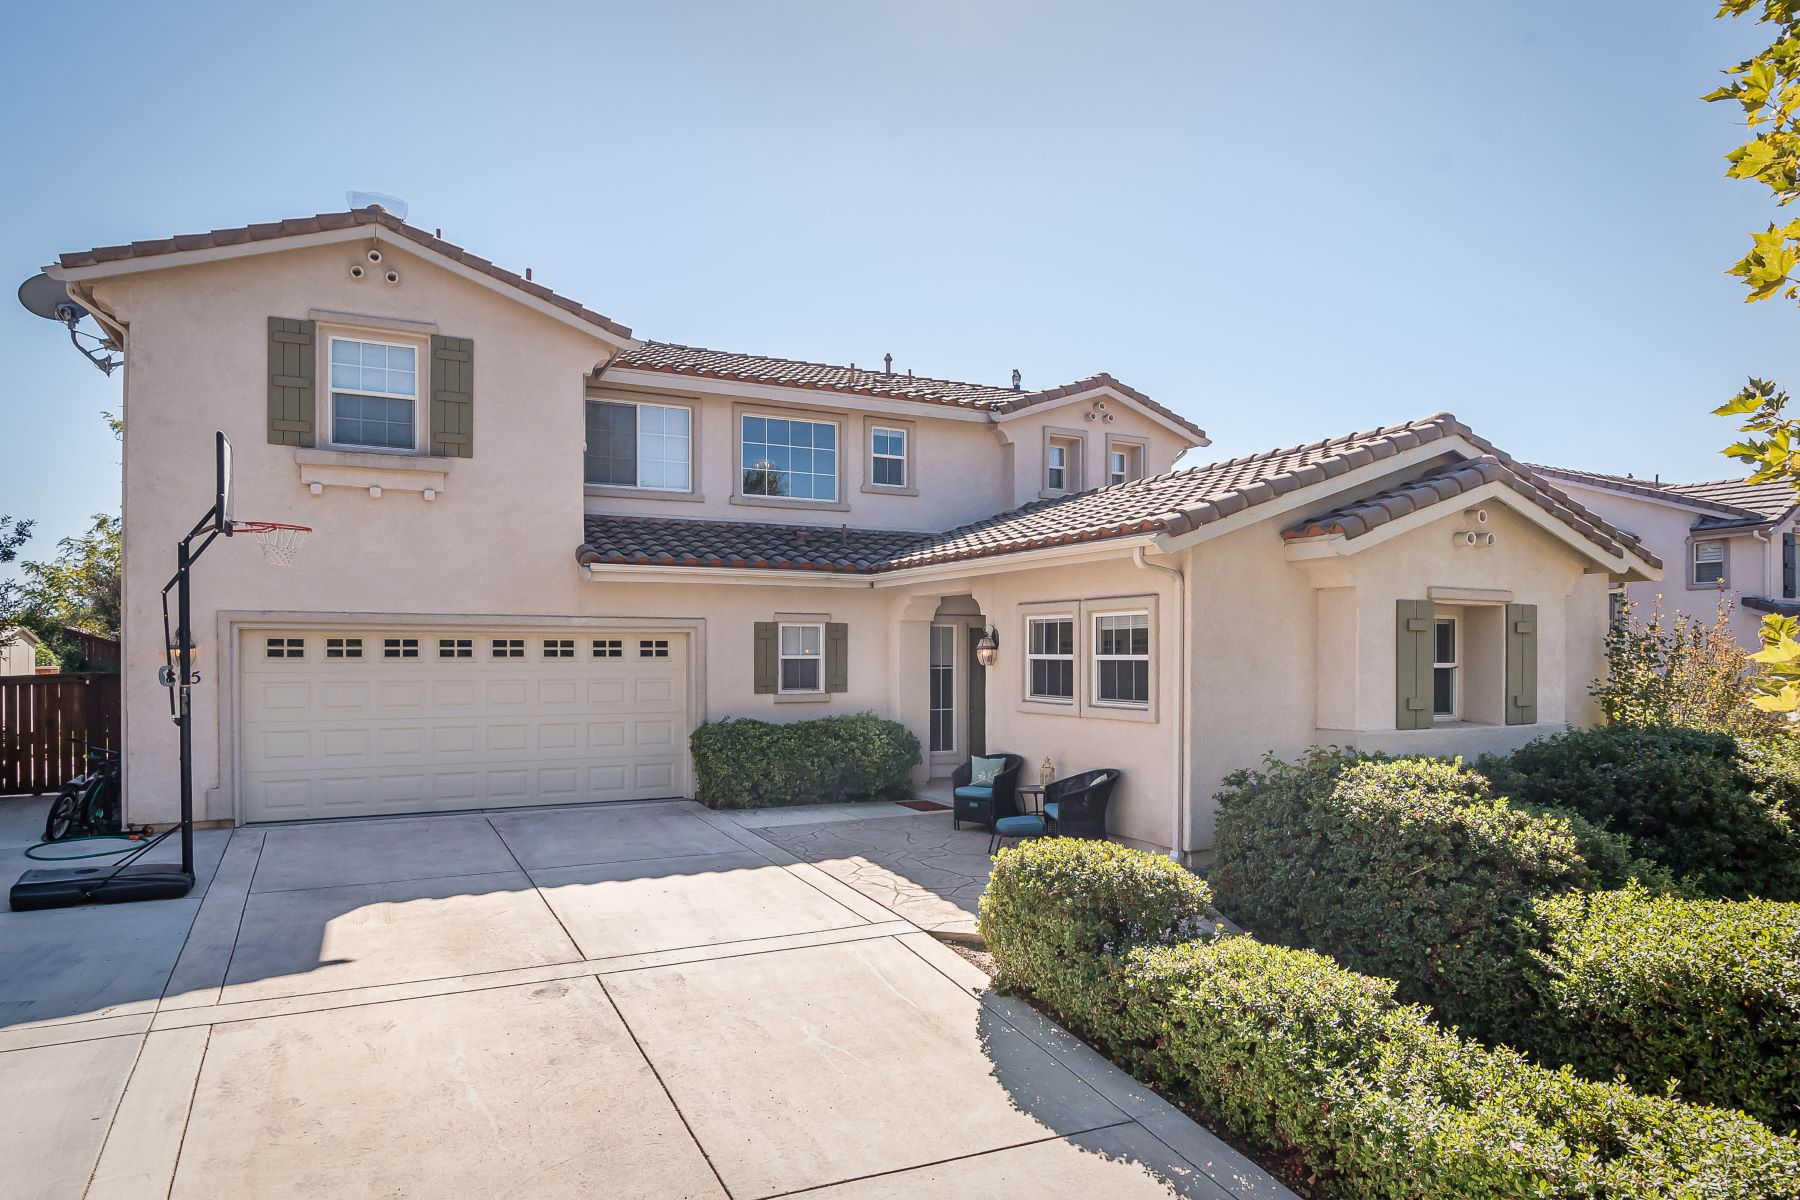 Single Family Homes for Sale at West Templeton Home 805 Peterson Ranch Road Templeton, California 93465 United States